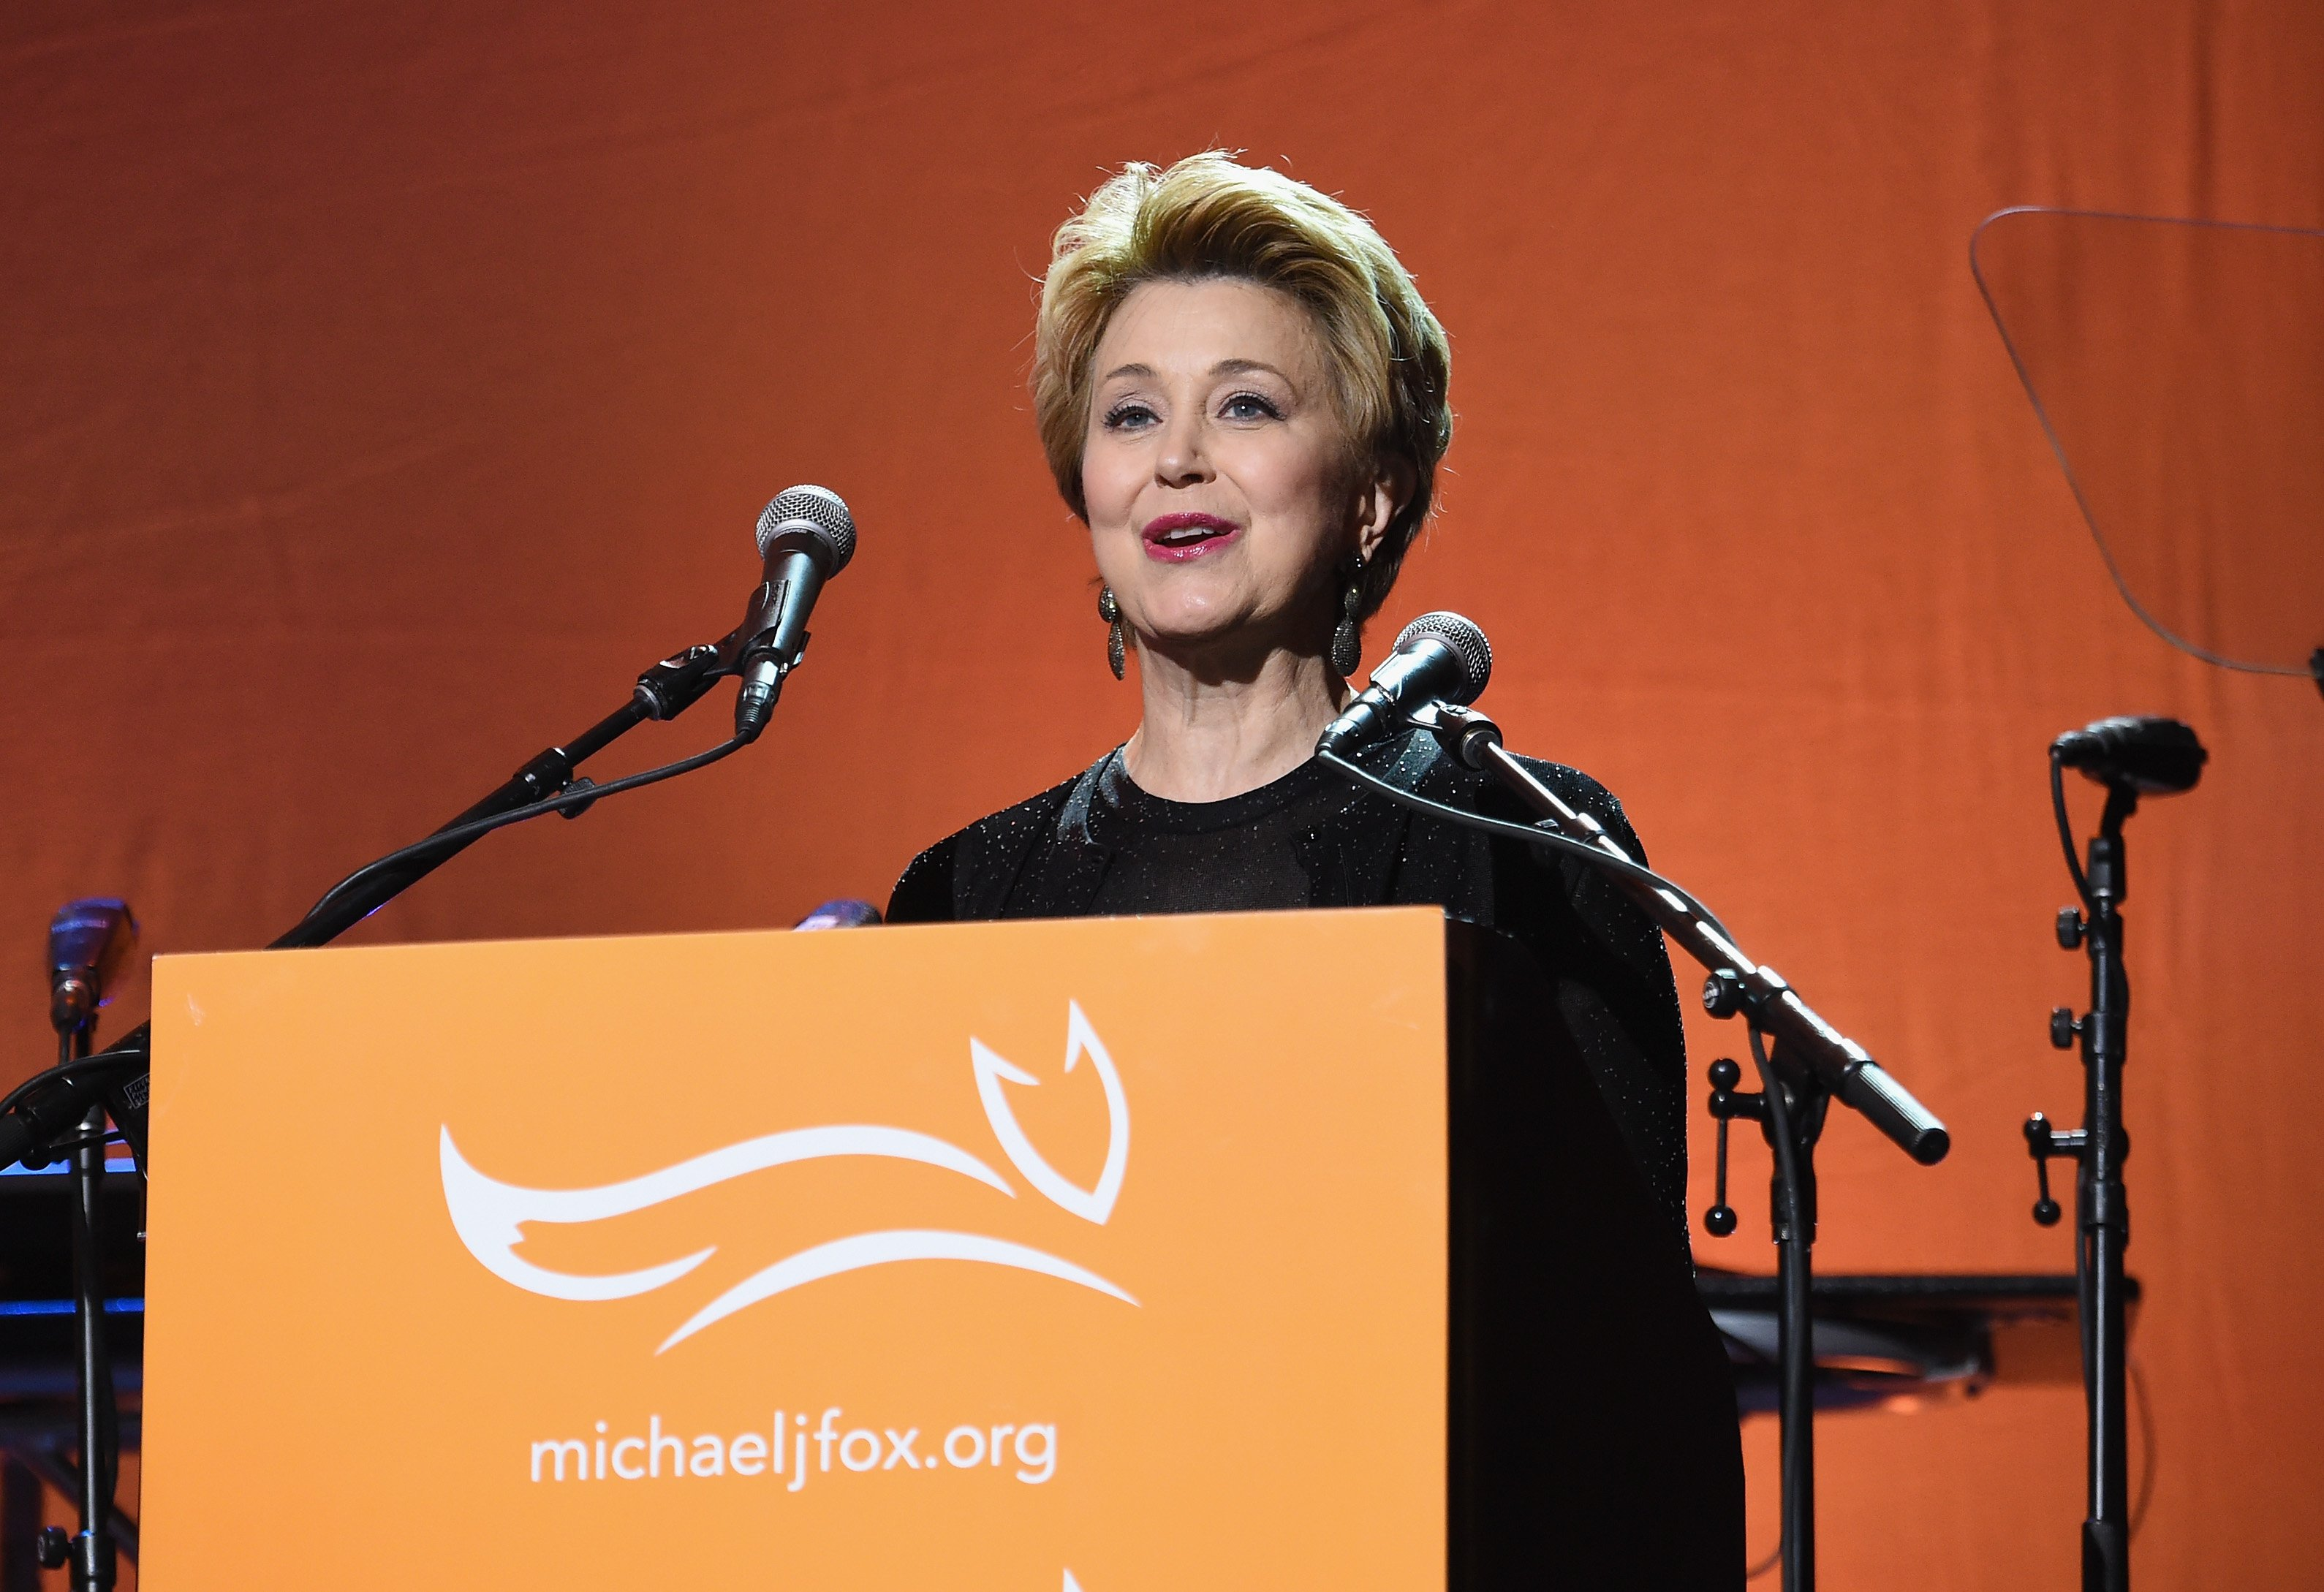 Jane Pauley at the Hilton New York on November 11, 2017 | Source: Getty Images